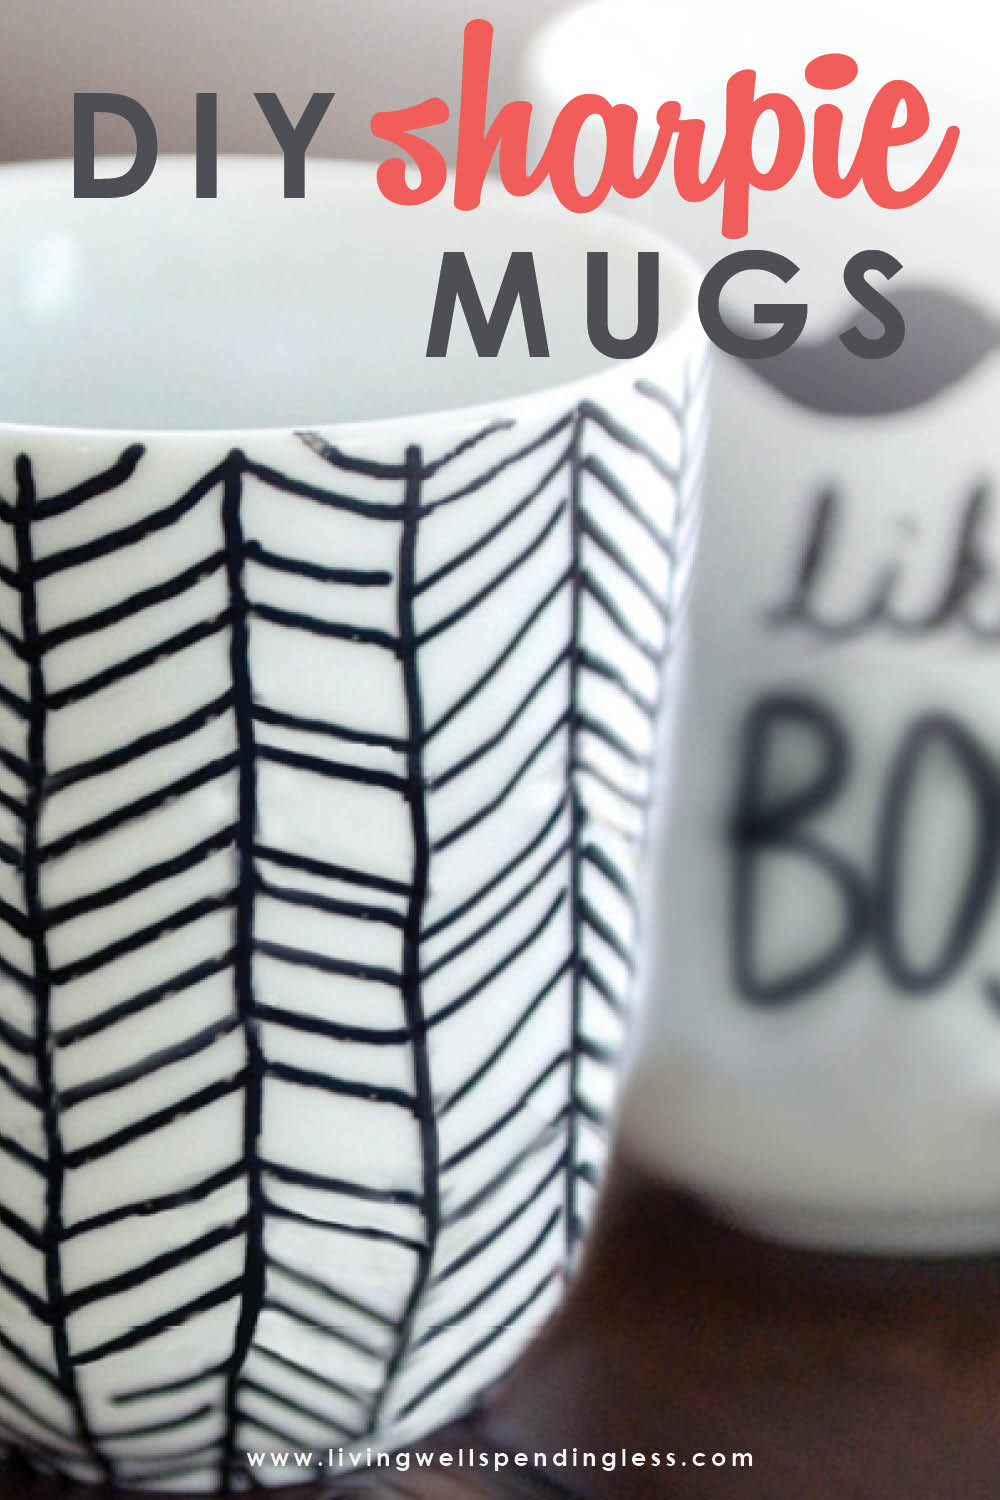 Easy Diy Sharpie Mugs Sharpie Mug Project Diy Mugs